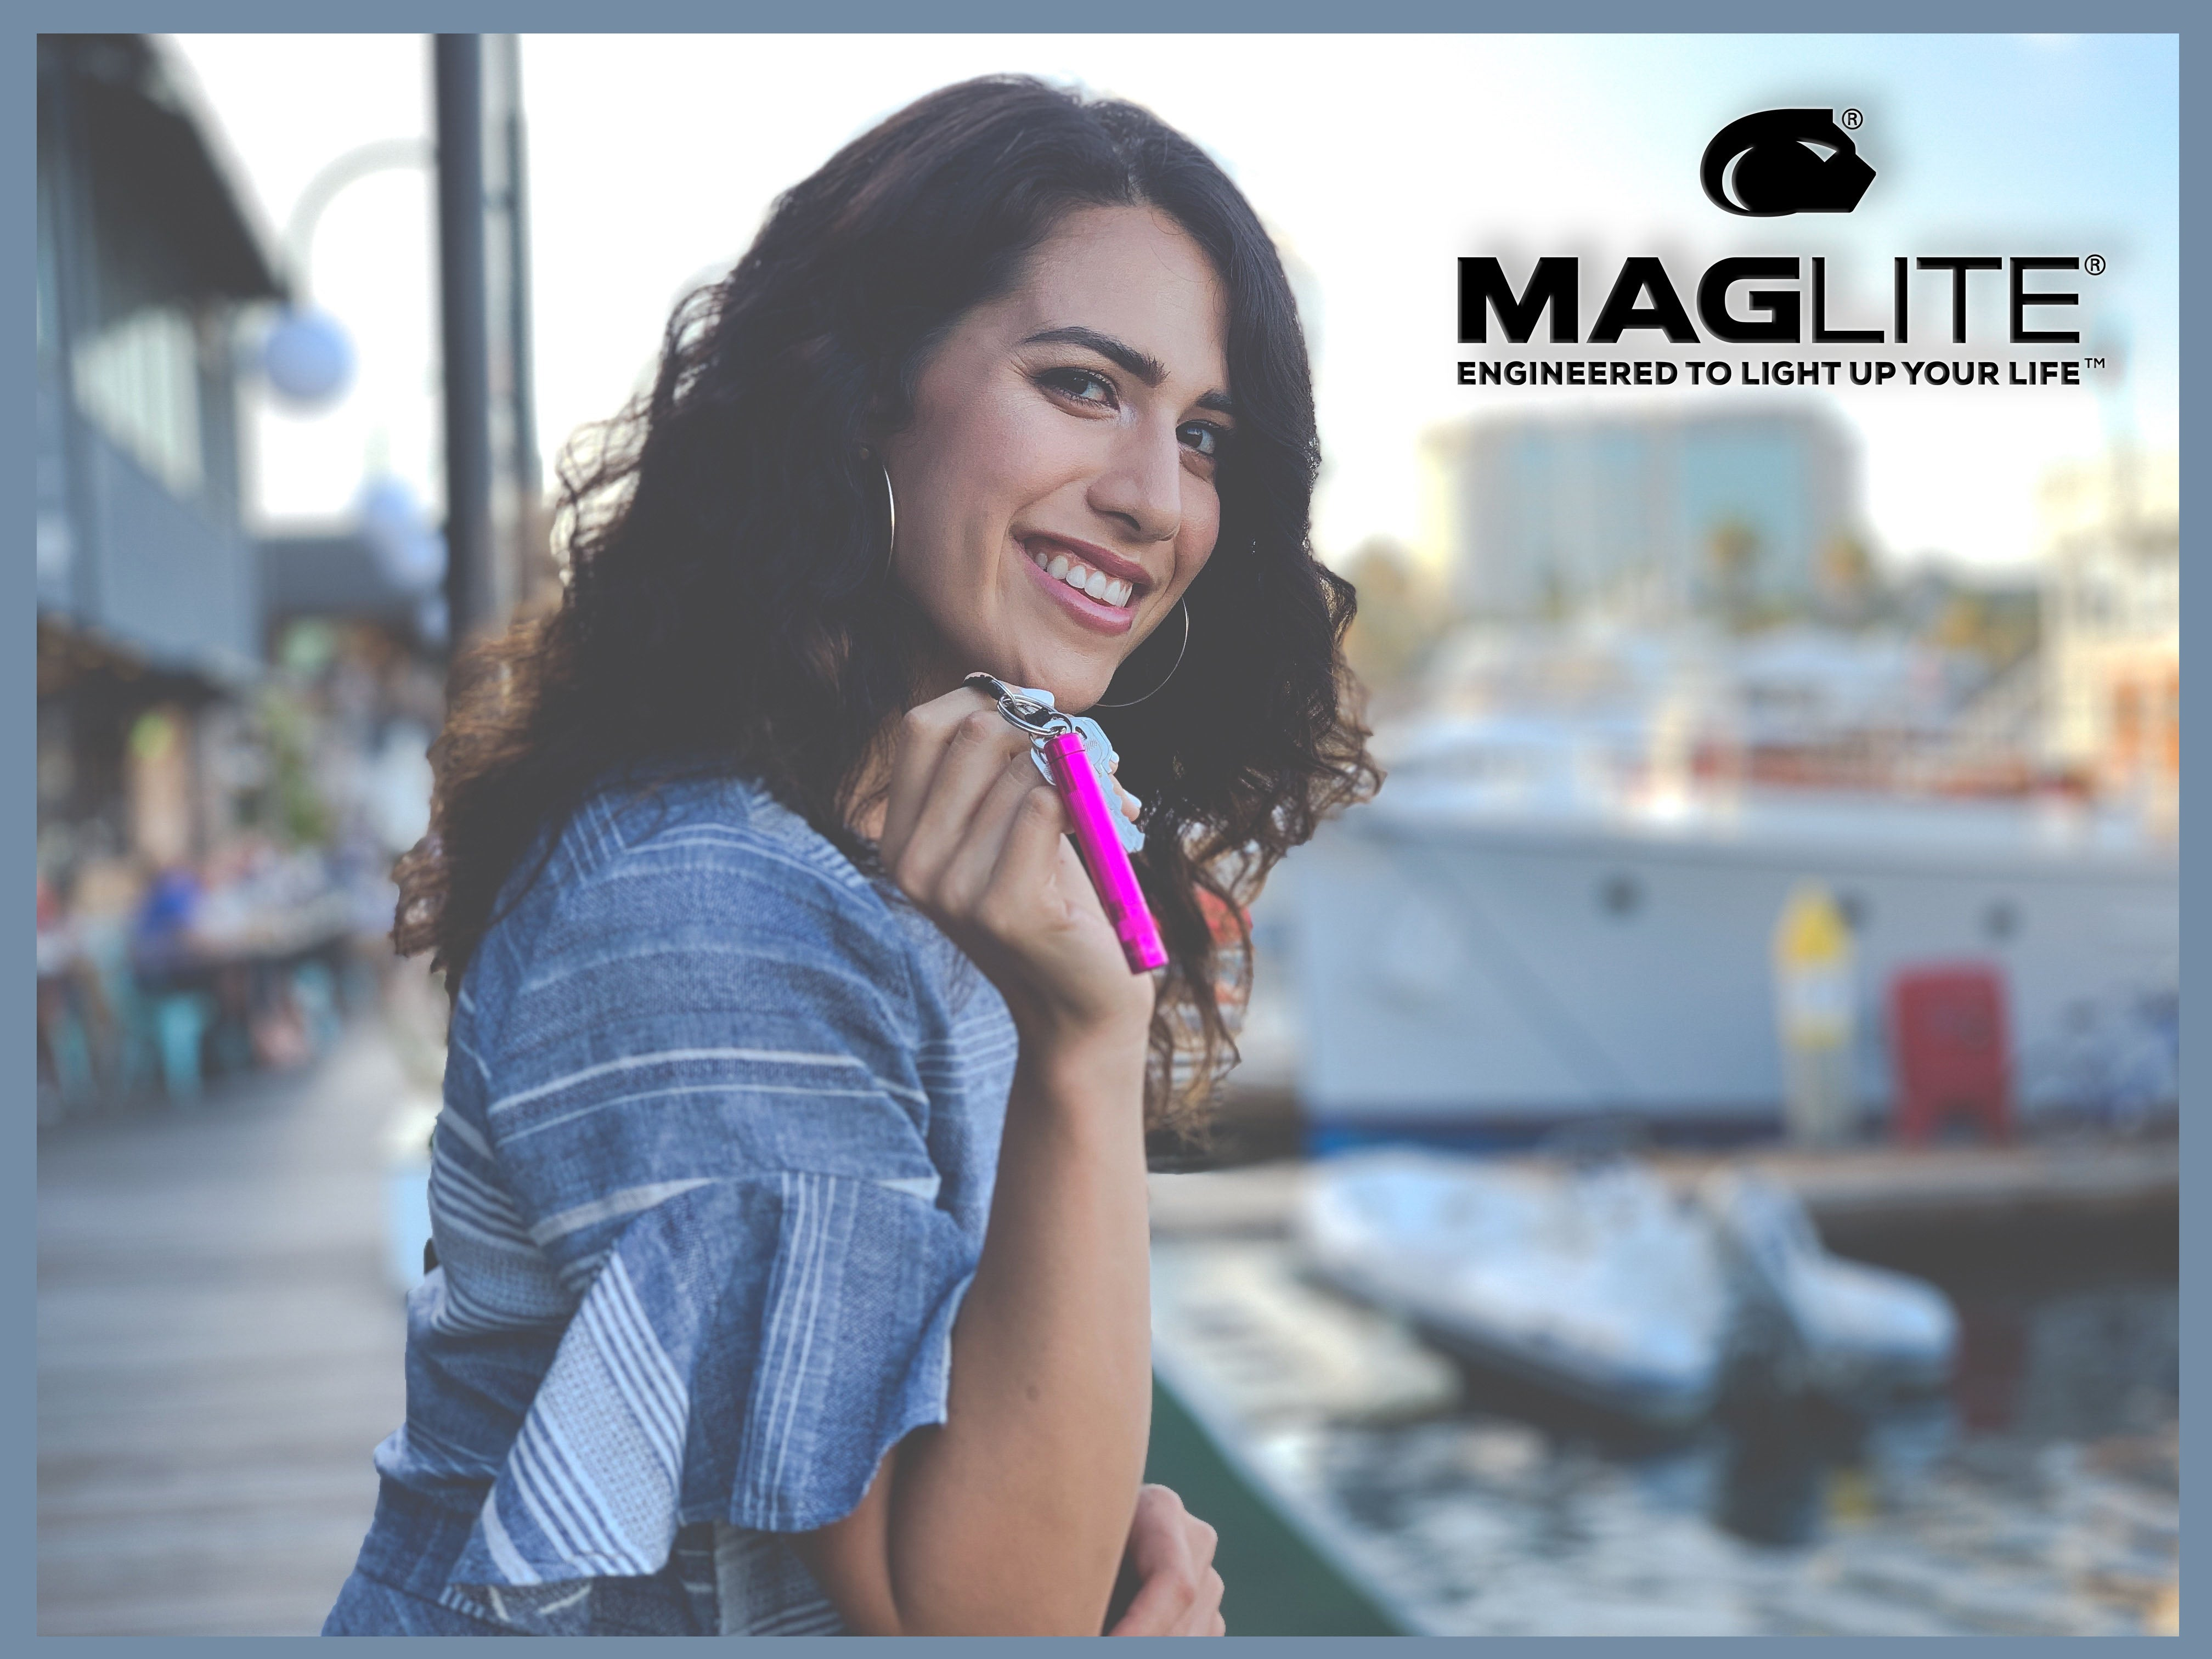 Maglite® Contact